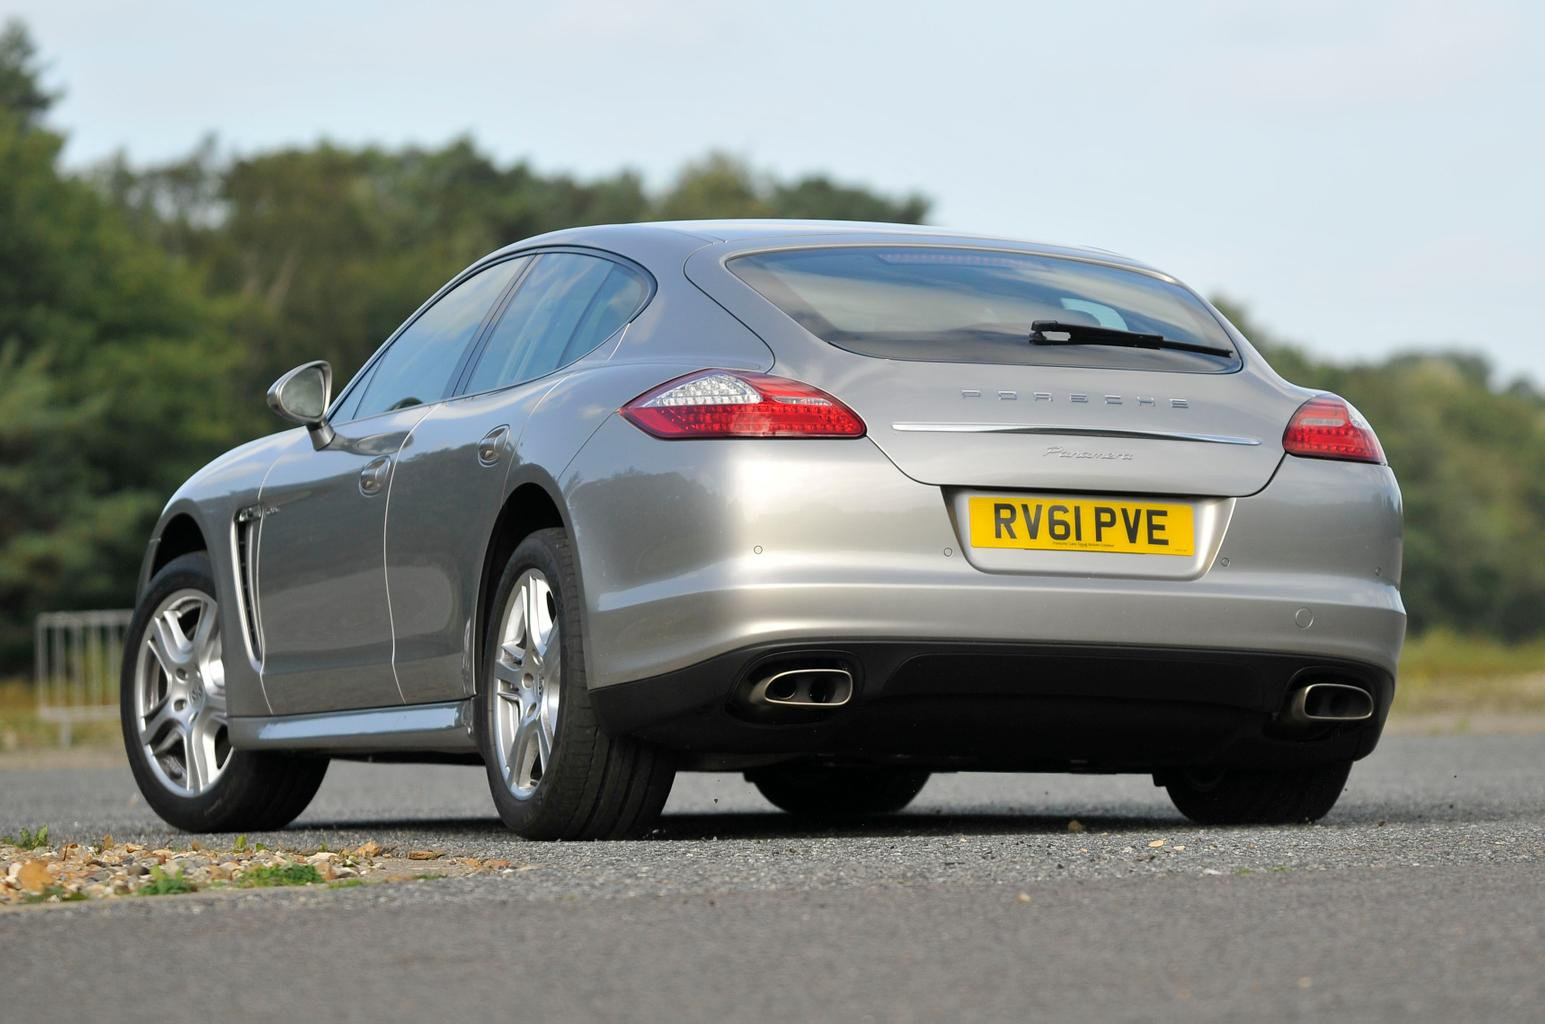 Used test – stylish luxury cars: Mercedes-Benz CLS vs Porsche Panamera